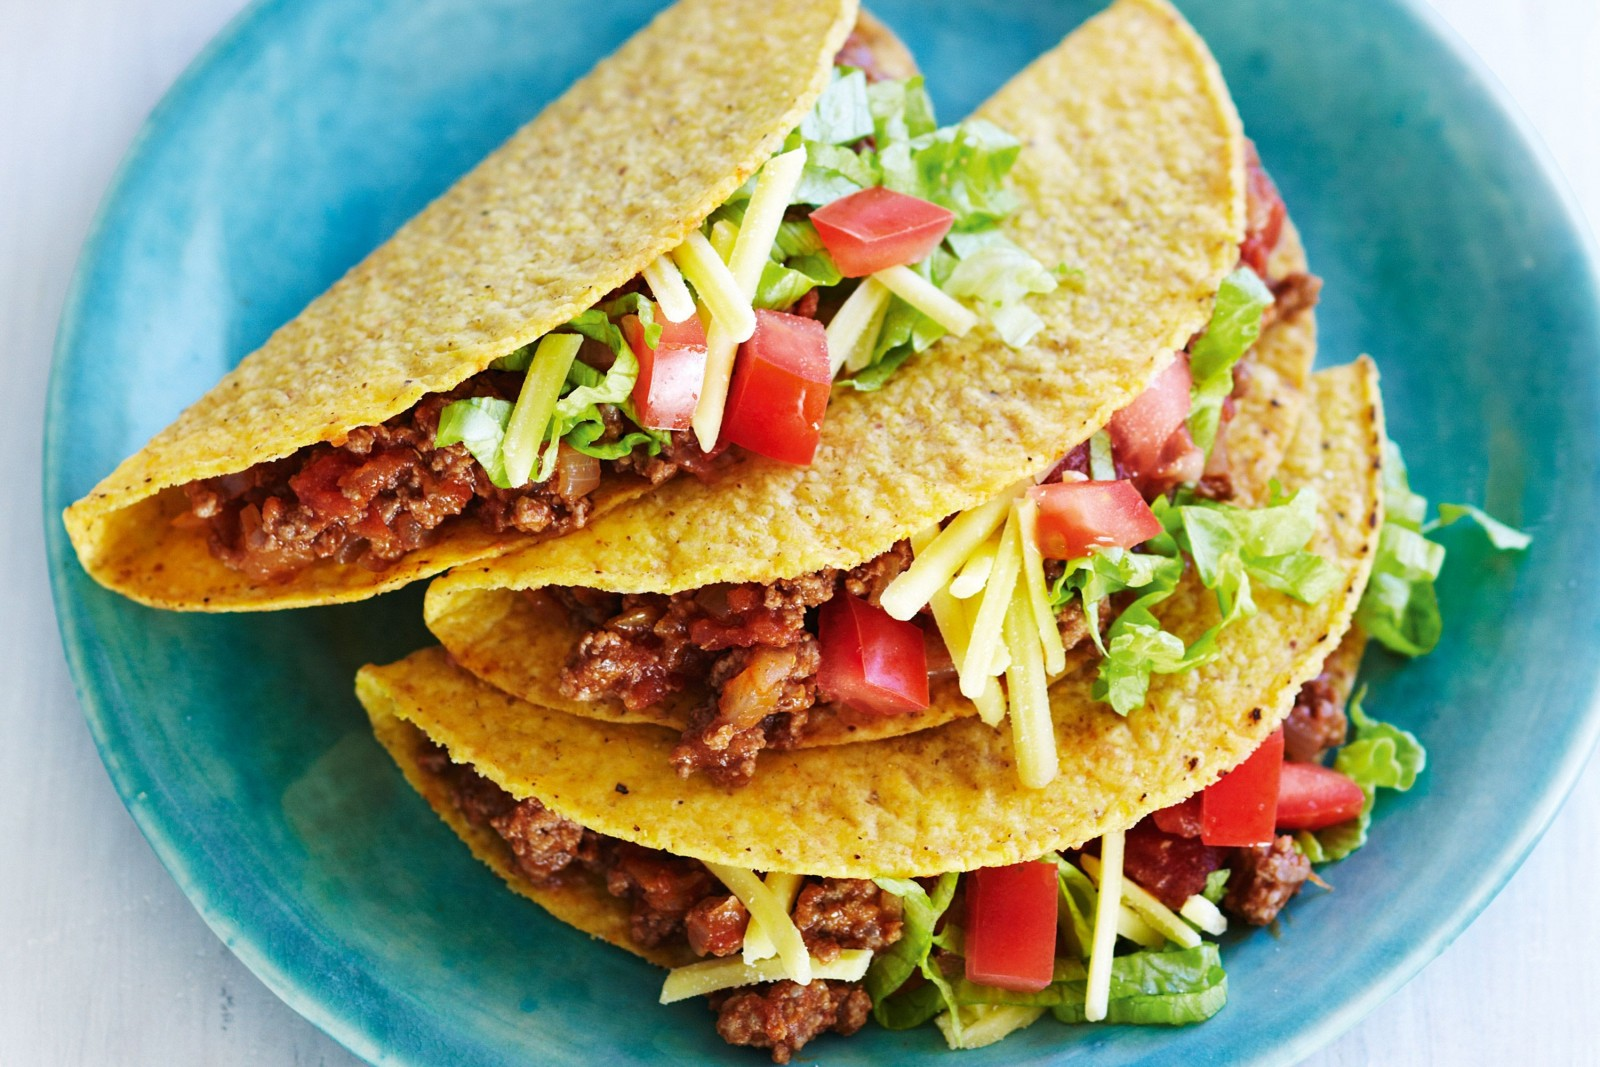 aussie-style-beef-and-salad-tacos-86525-1